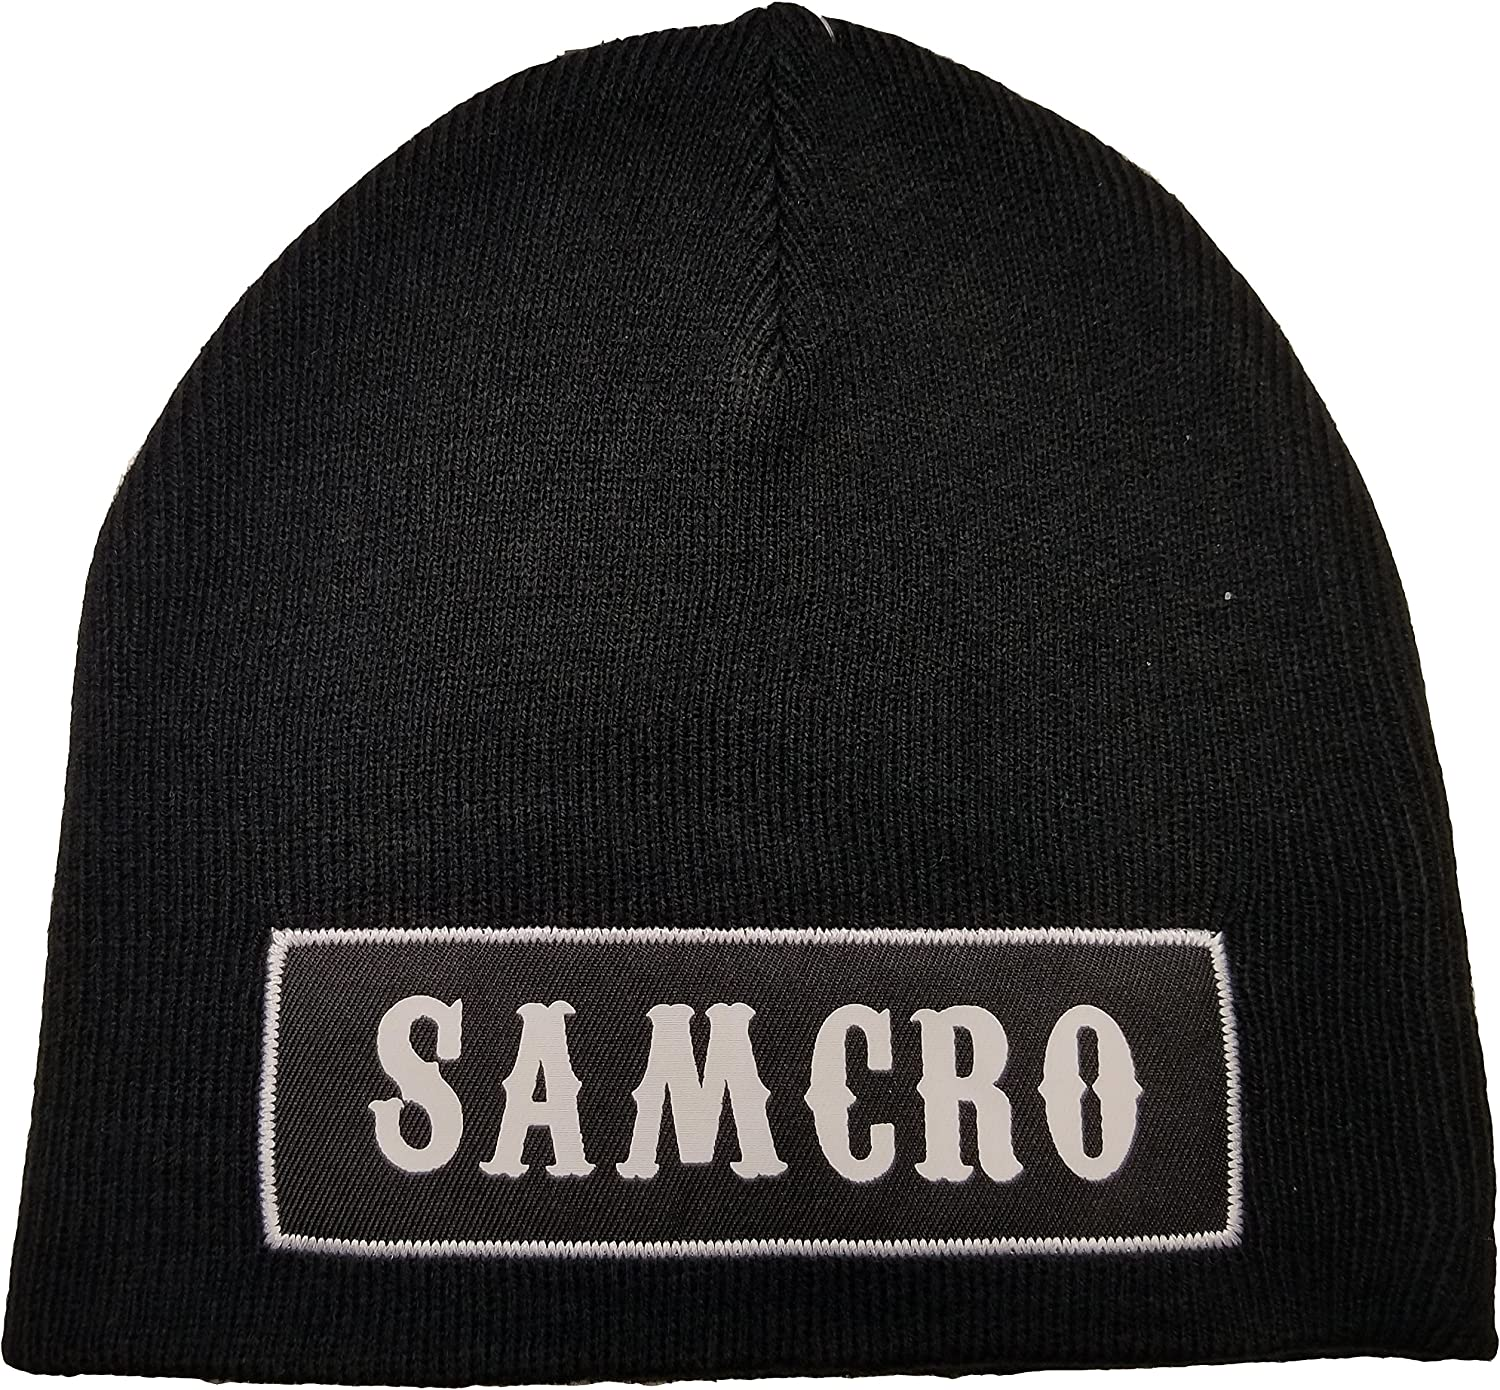 Sons Of Anarchy Reaper Print Baby Black Beanie Hat